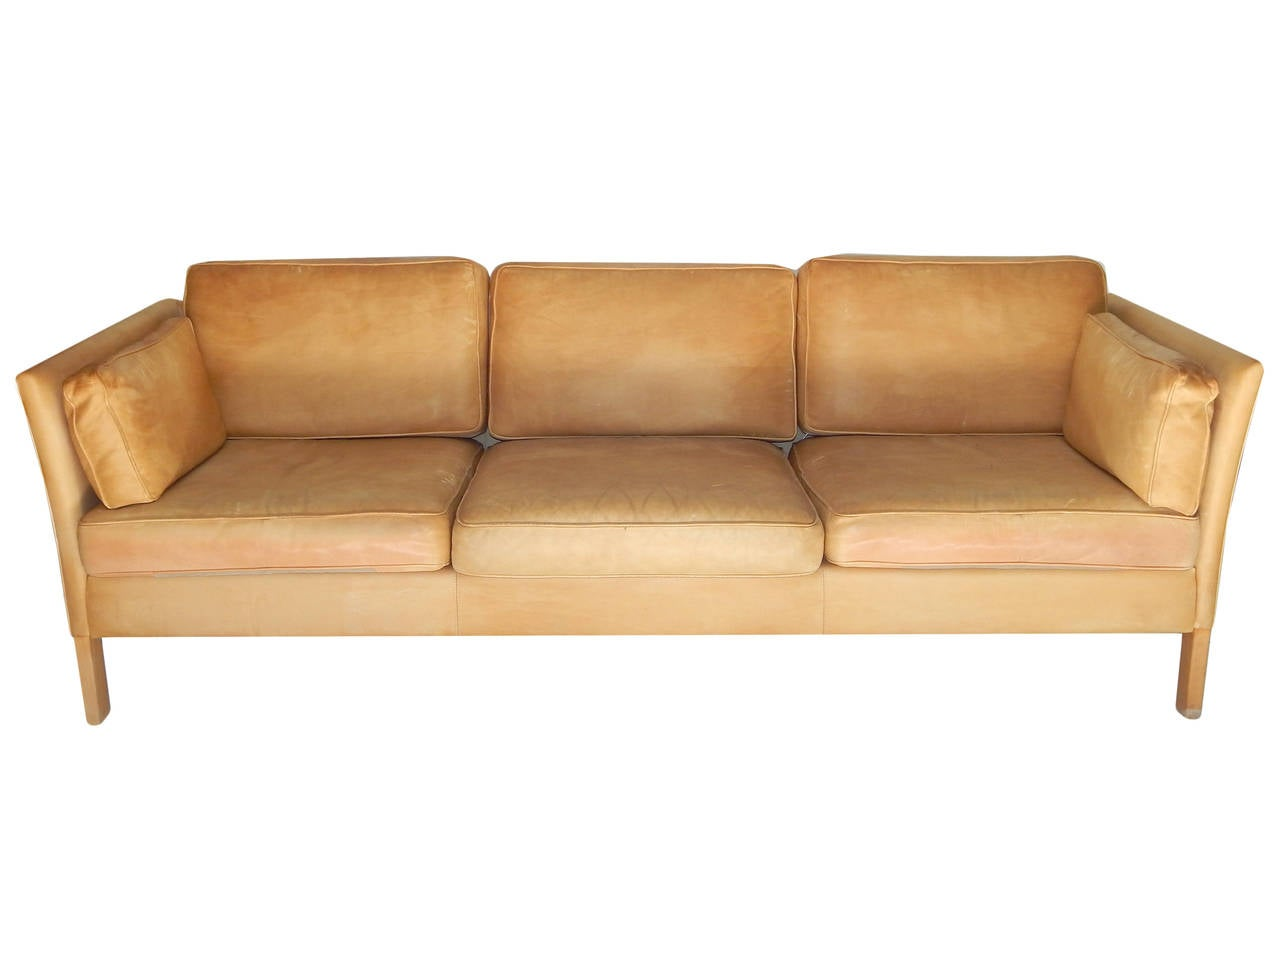 caramel colored leather sofas simmons sofa beds borge morgensen image 3